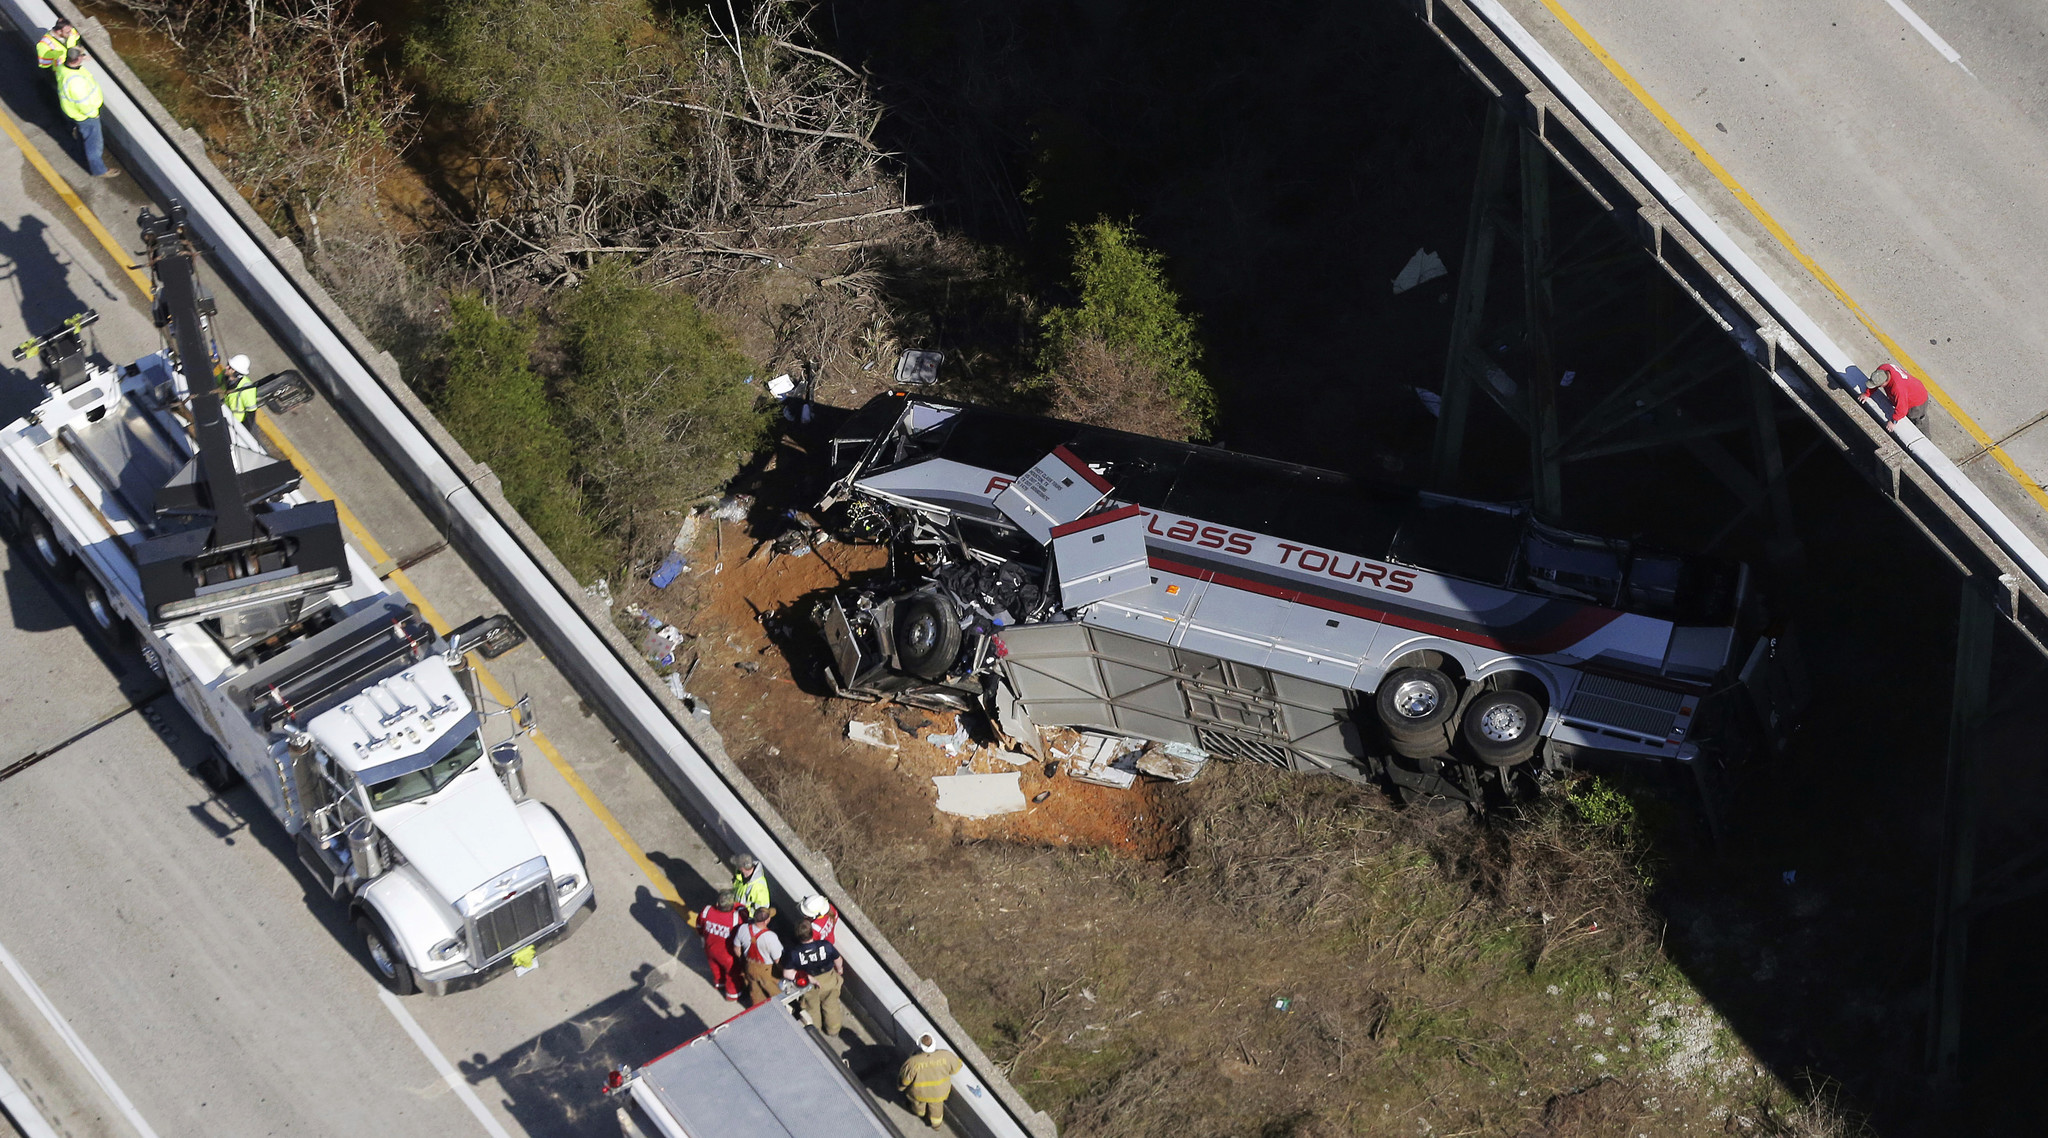 One dead, many injured after bus carrying Texas high school students plunges into ravine